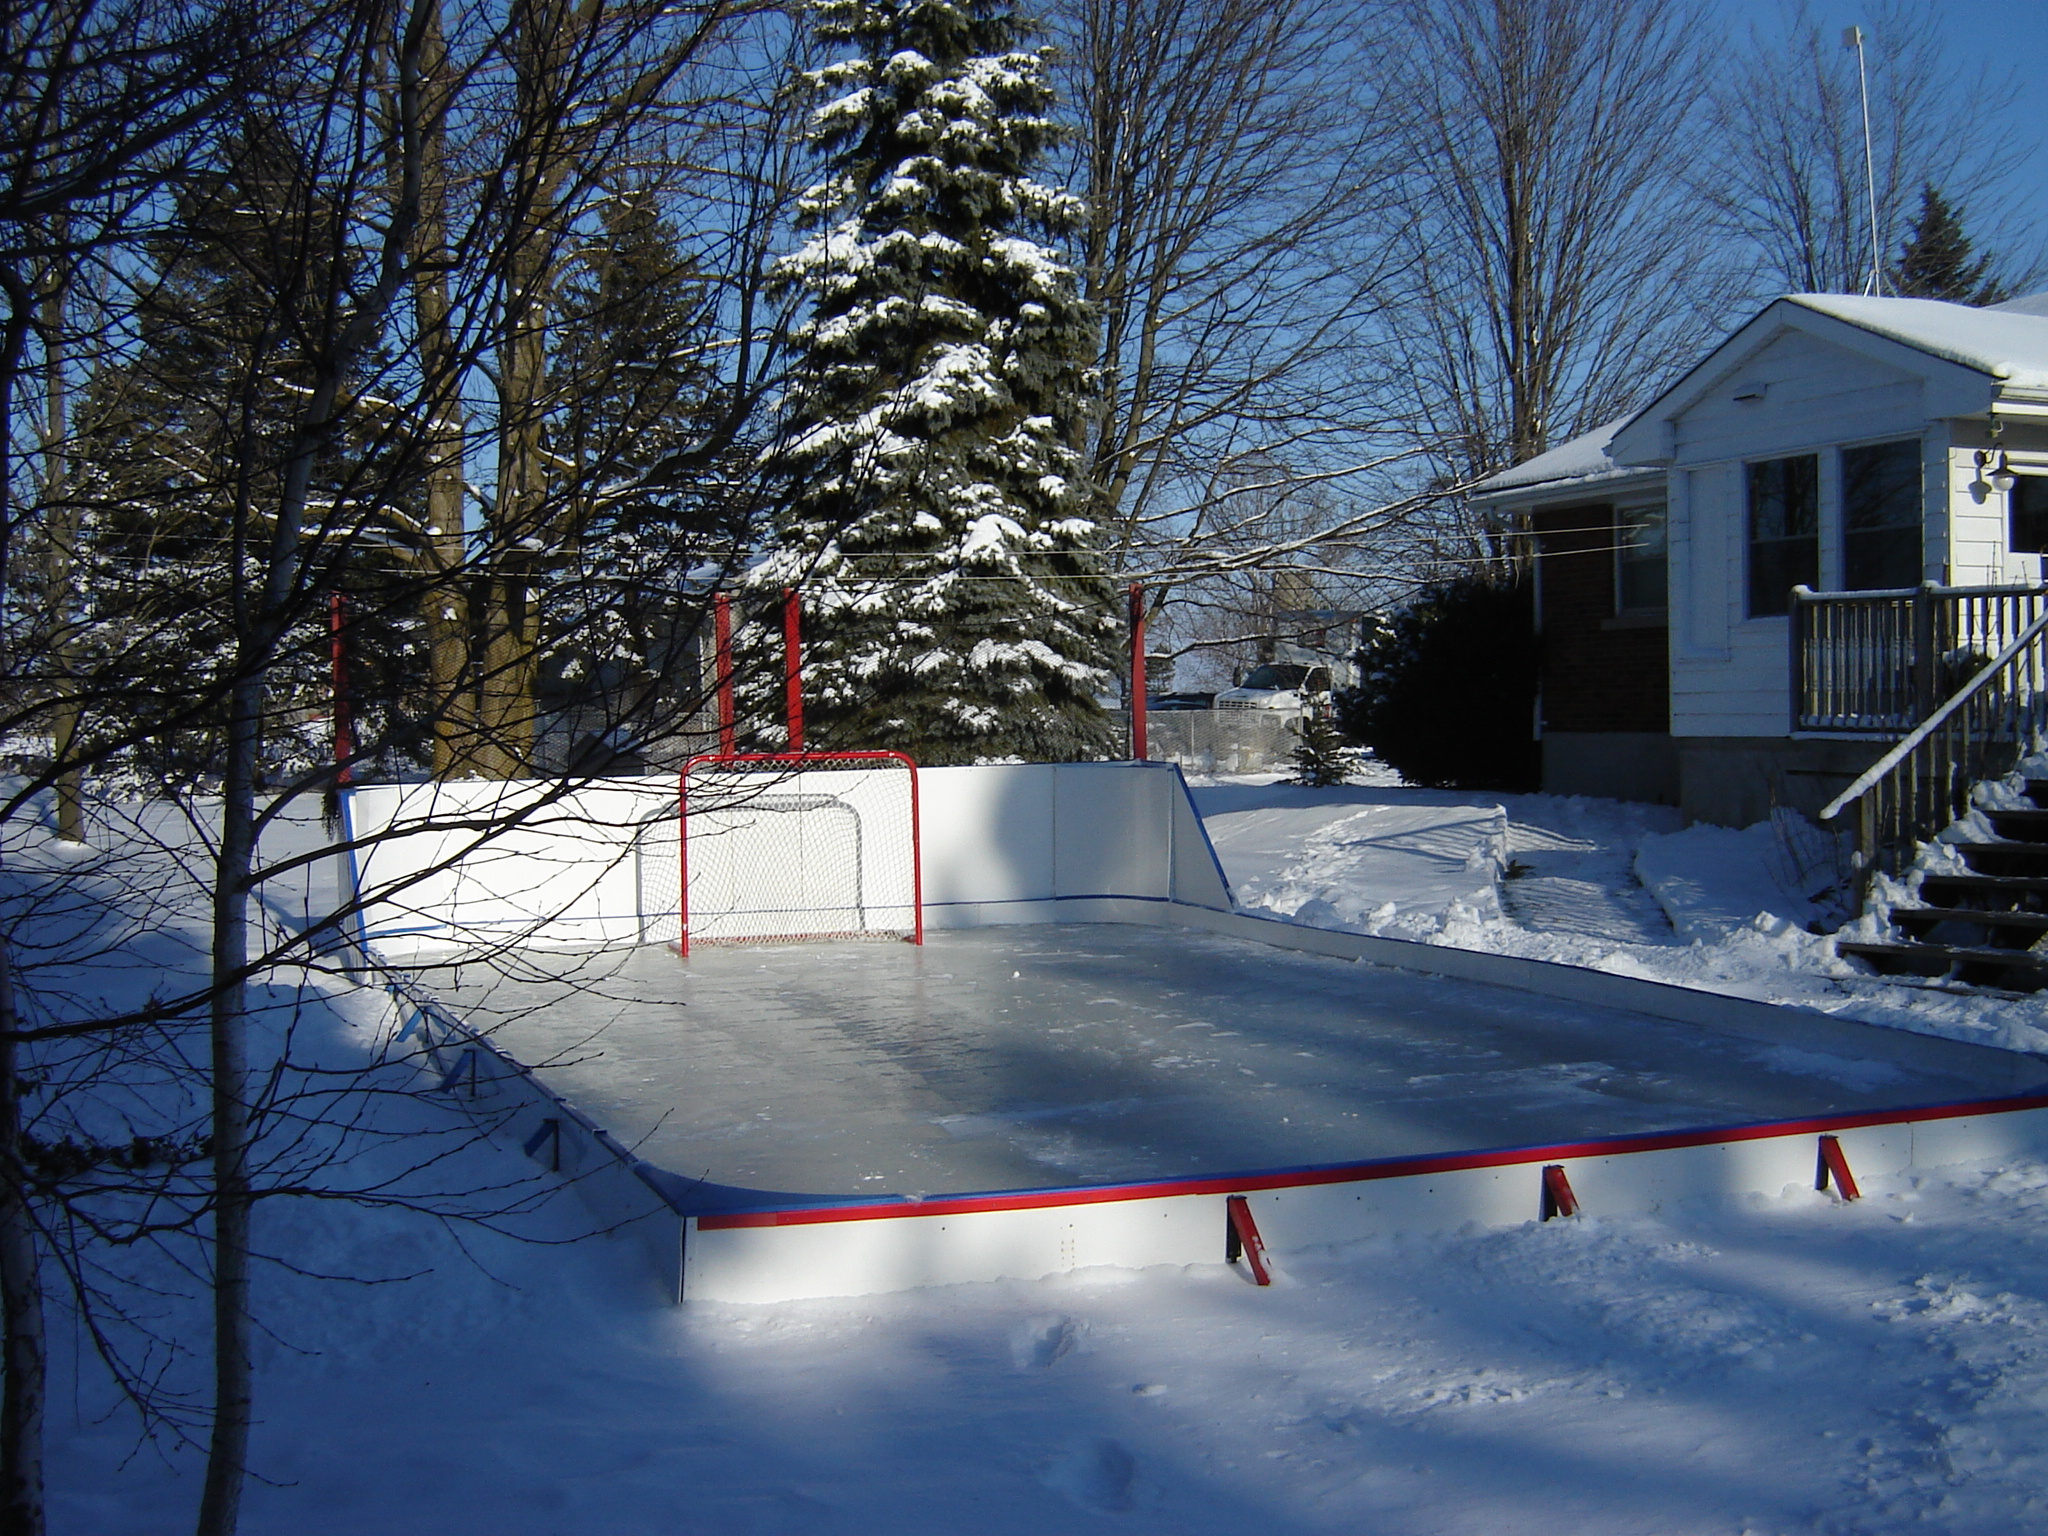 Customize and personalize your rink for your yard. Real Rinks for Real Yards.